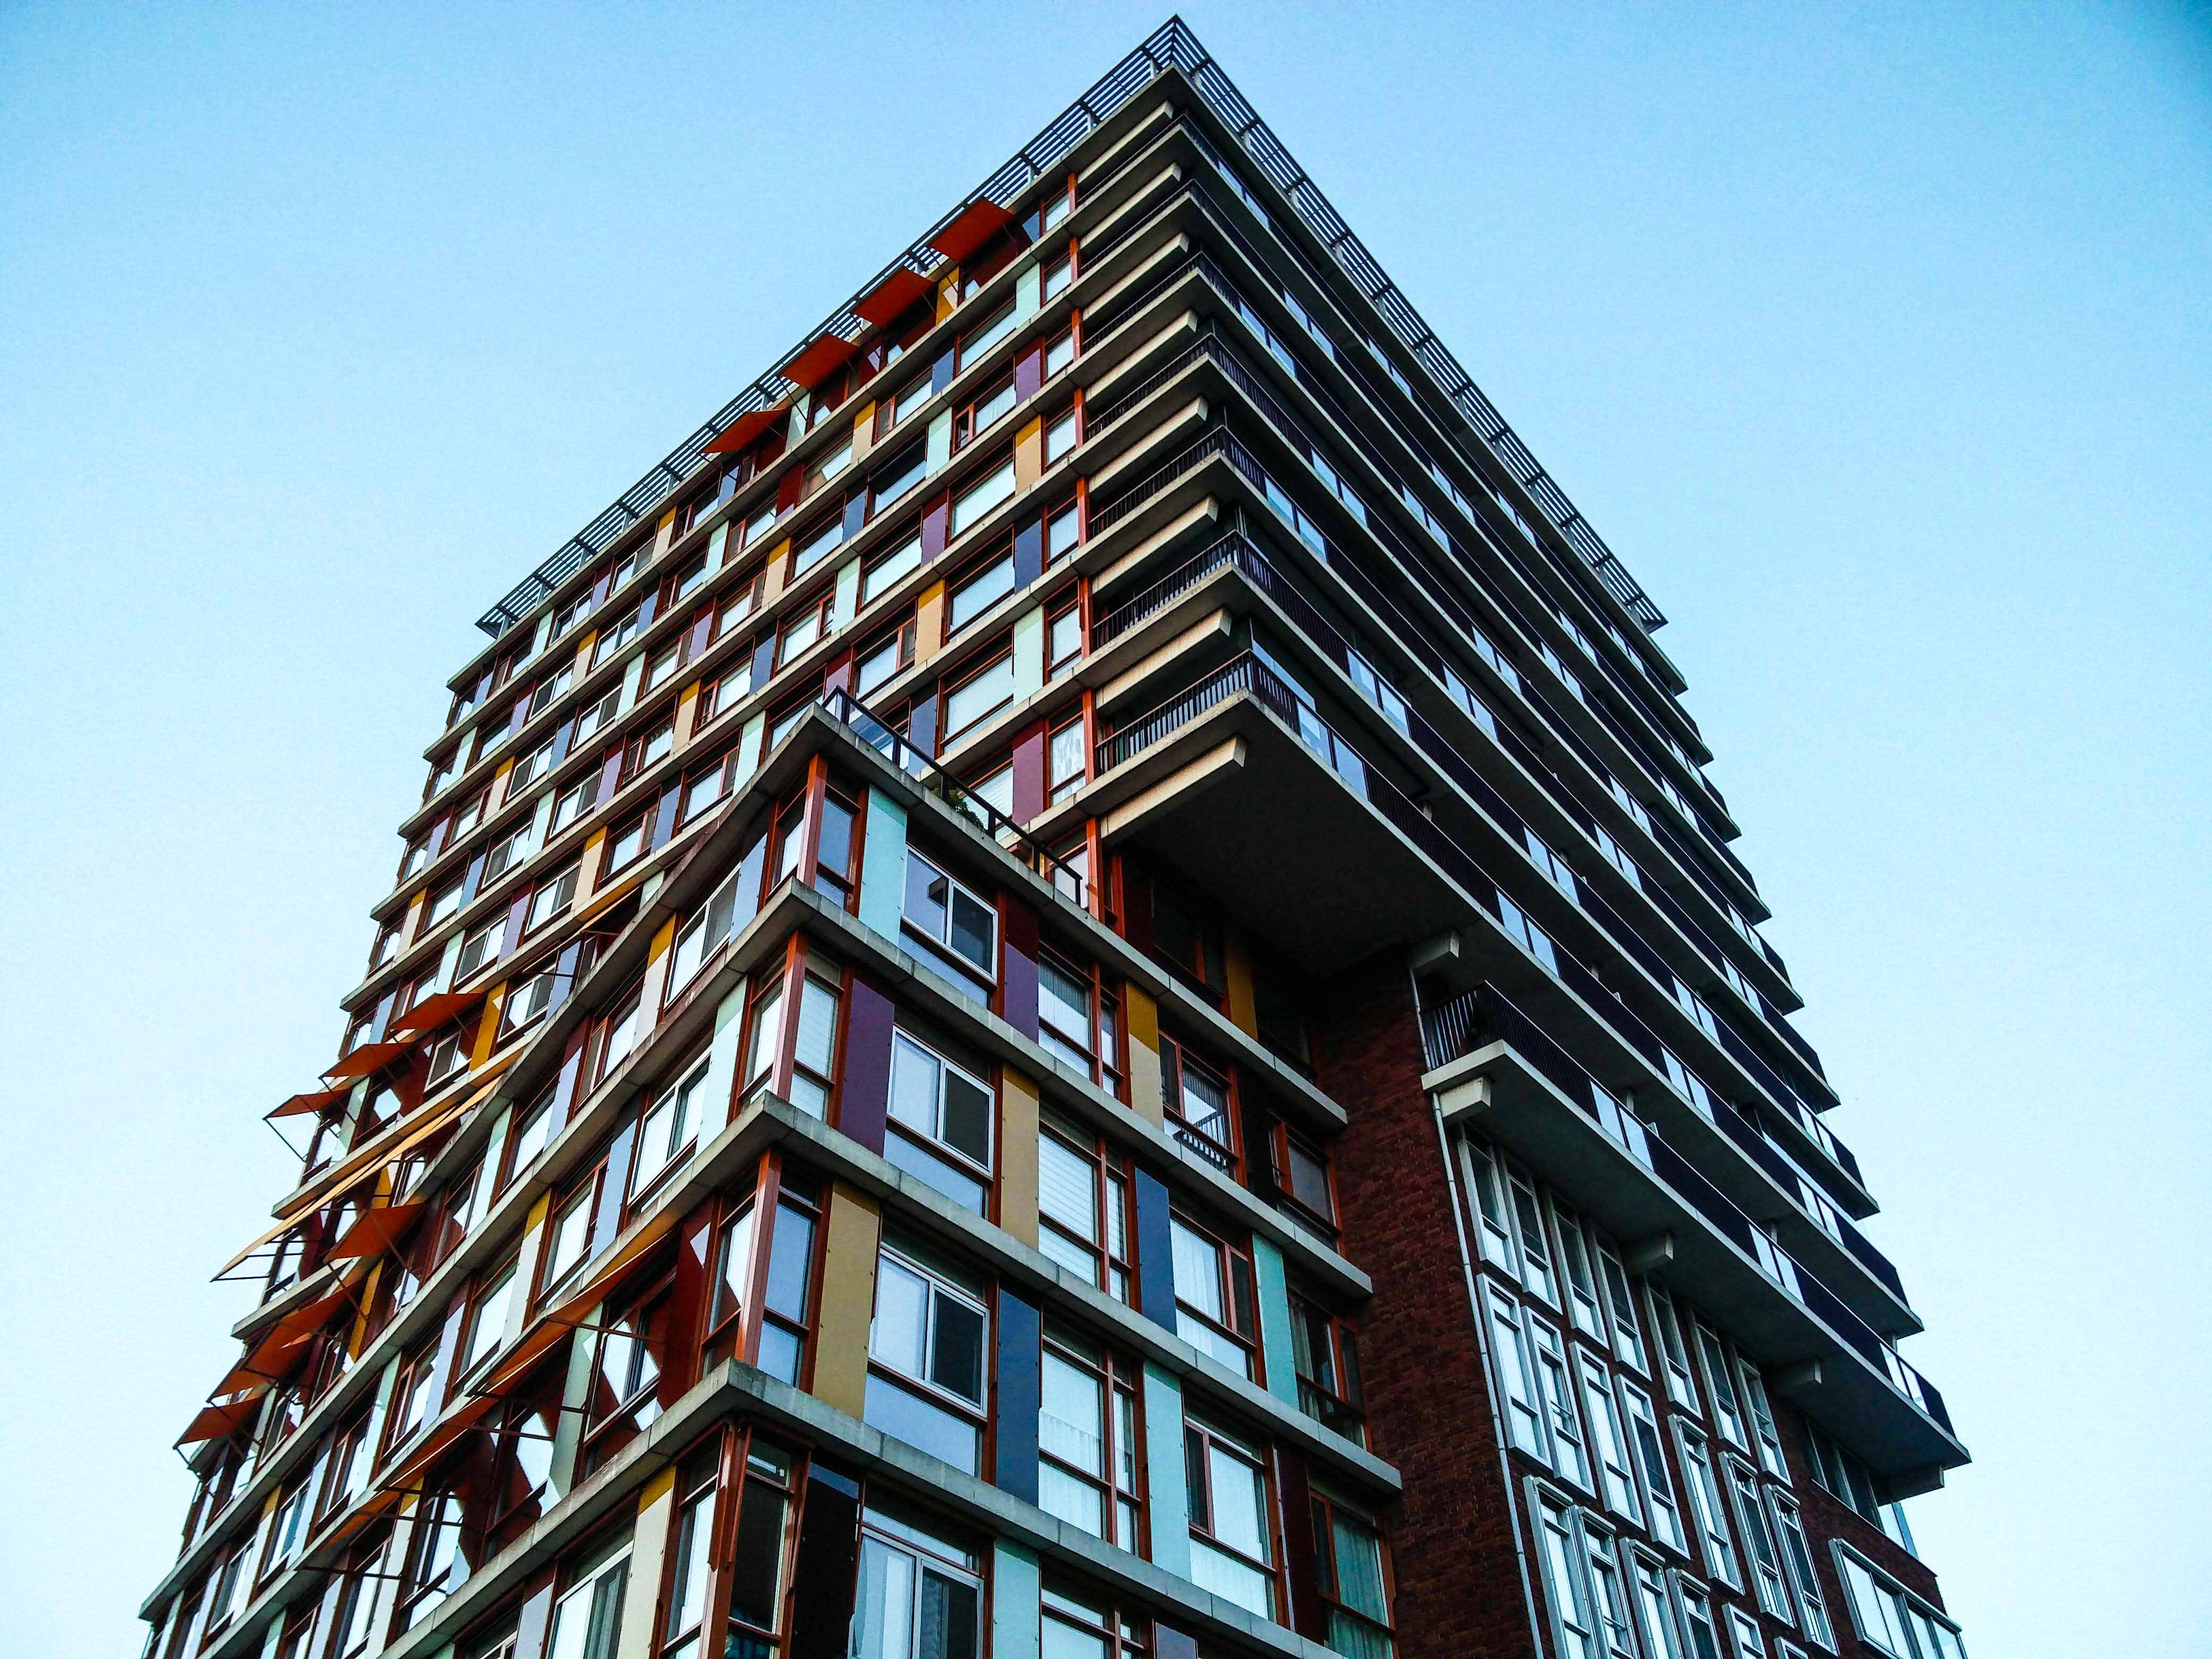 low-angle photography of multicolored building